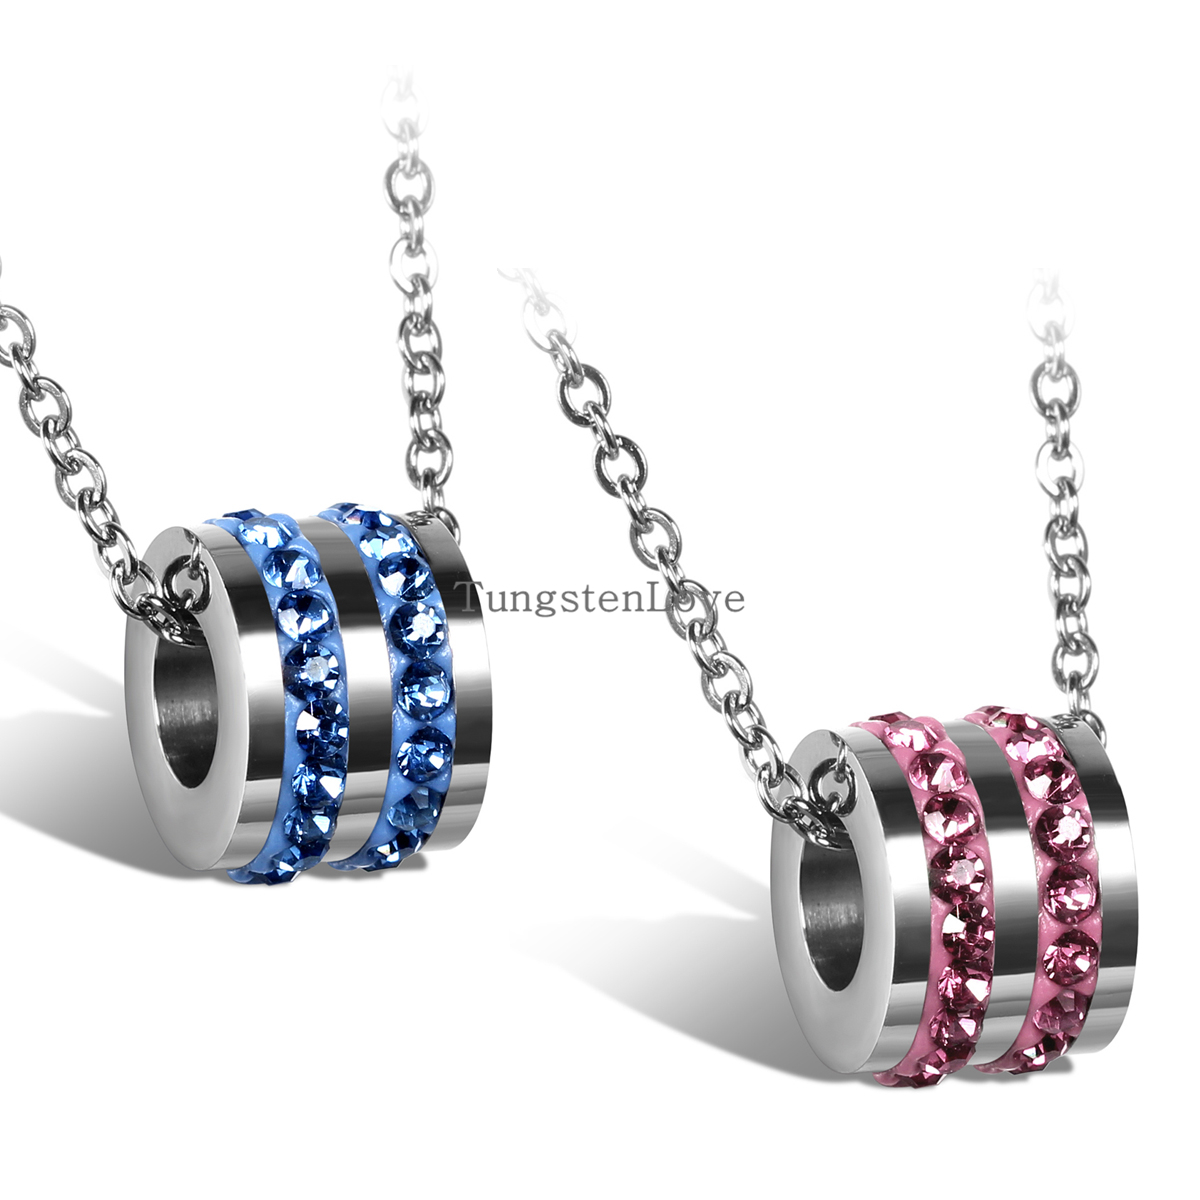 2015 Fashion Crystal Necklace Pink & Blue Rhinestone Cylinder long Necklaces for women hot sale wholesal necklaces(China (Mainland))